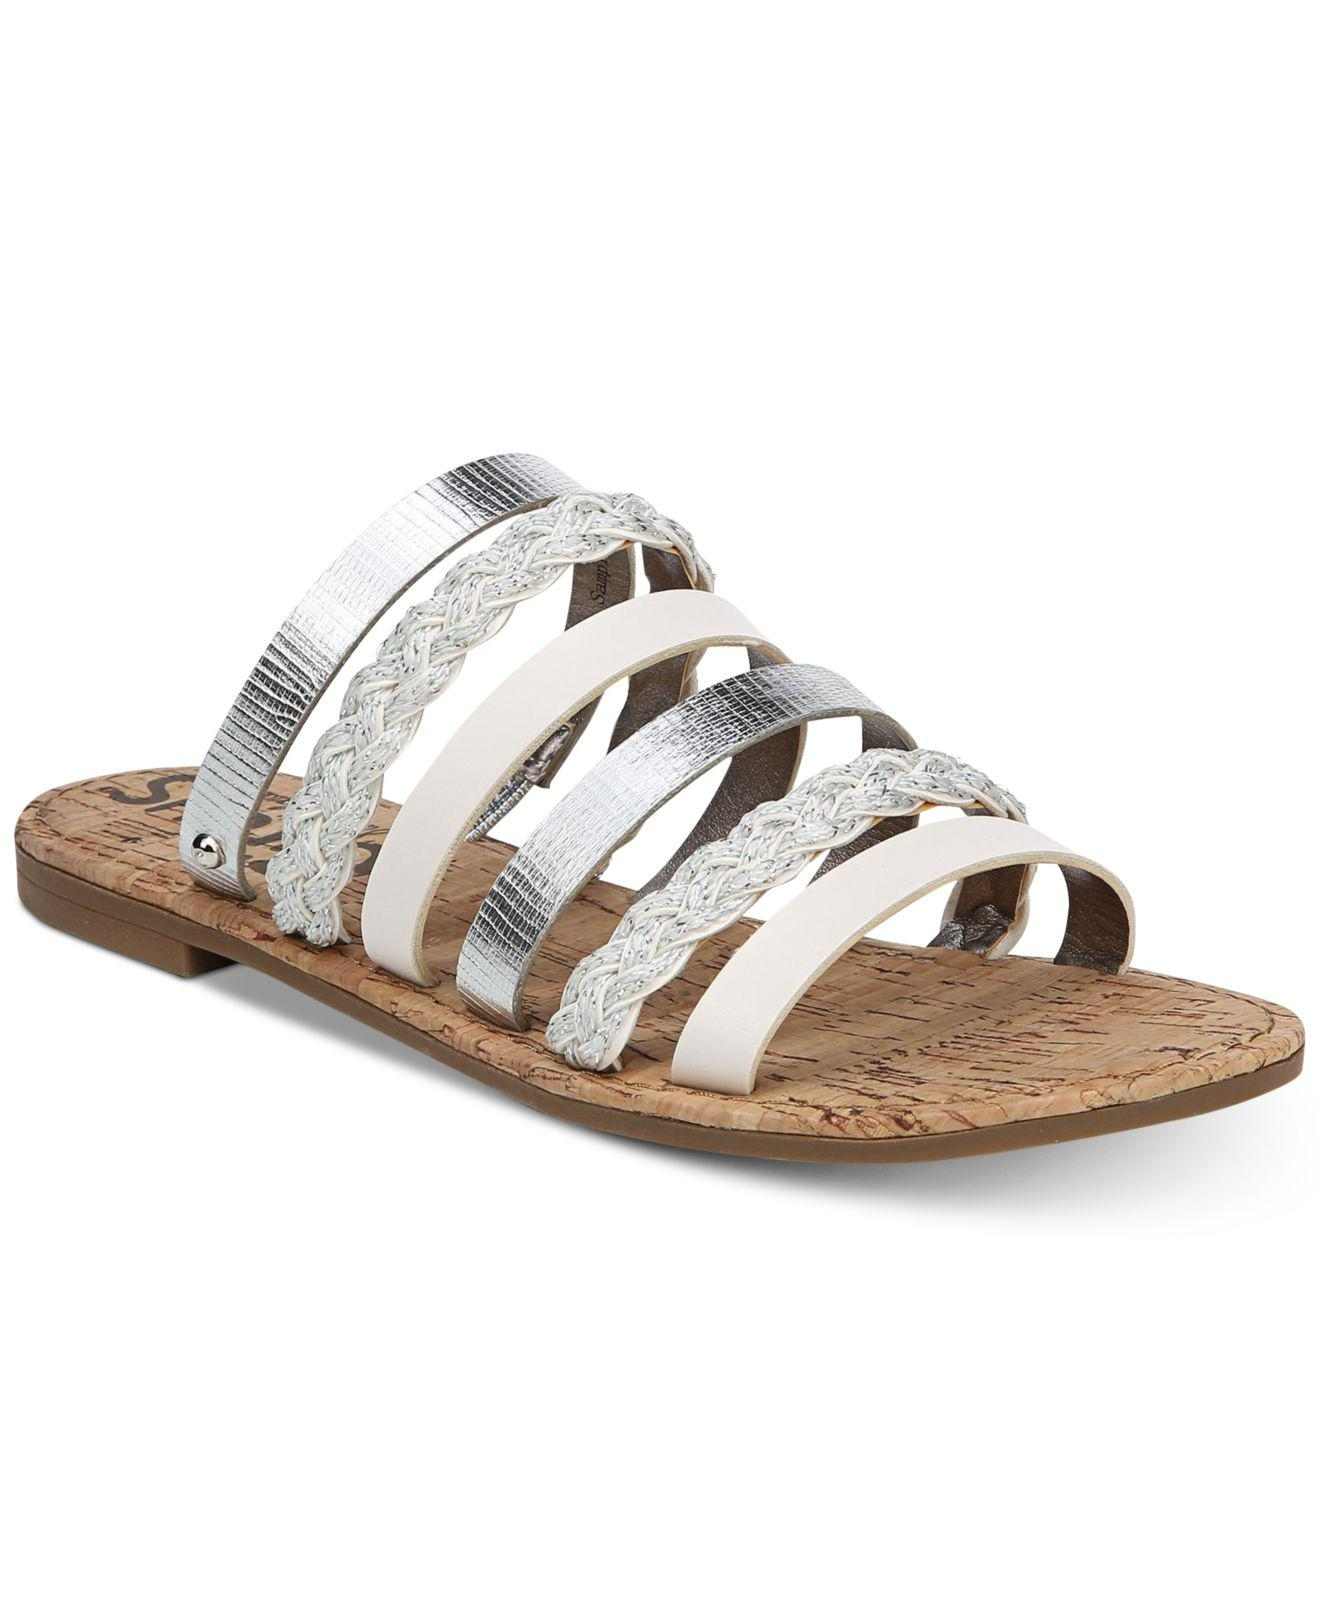 f3498e5aa5a Lyst - Circus by Sam Edelman Braiden Slide Sandals in Metallic